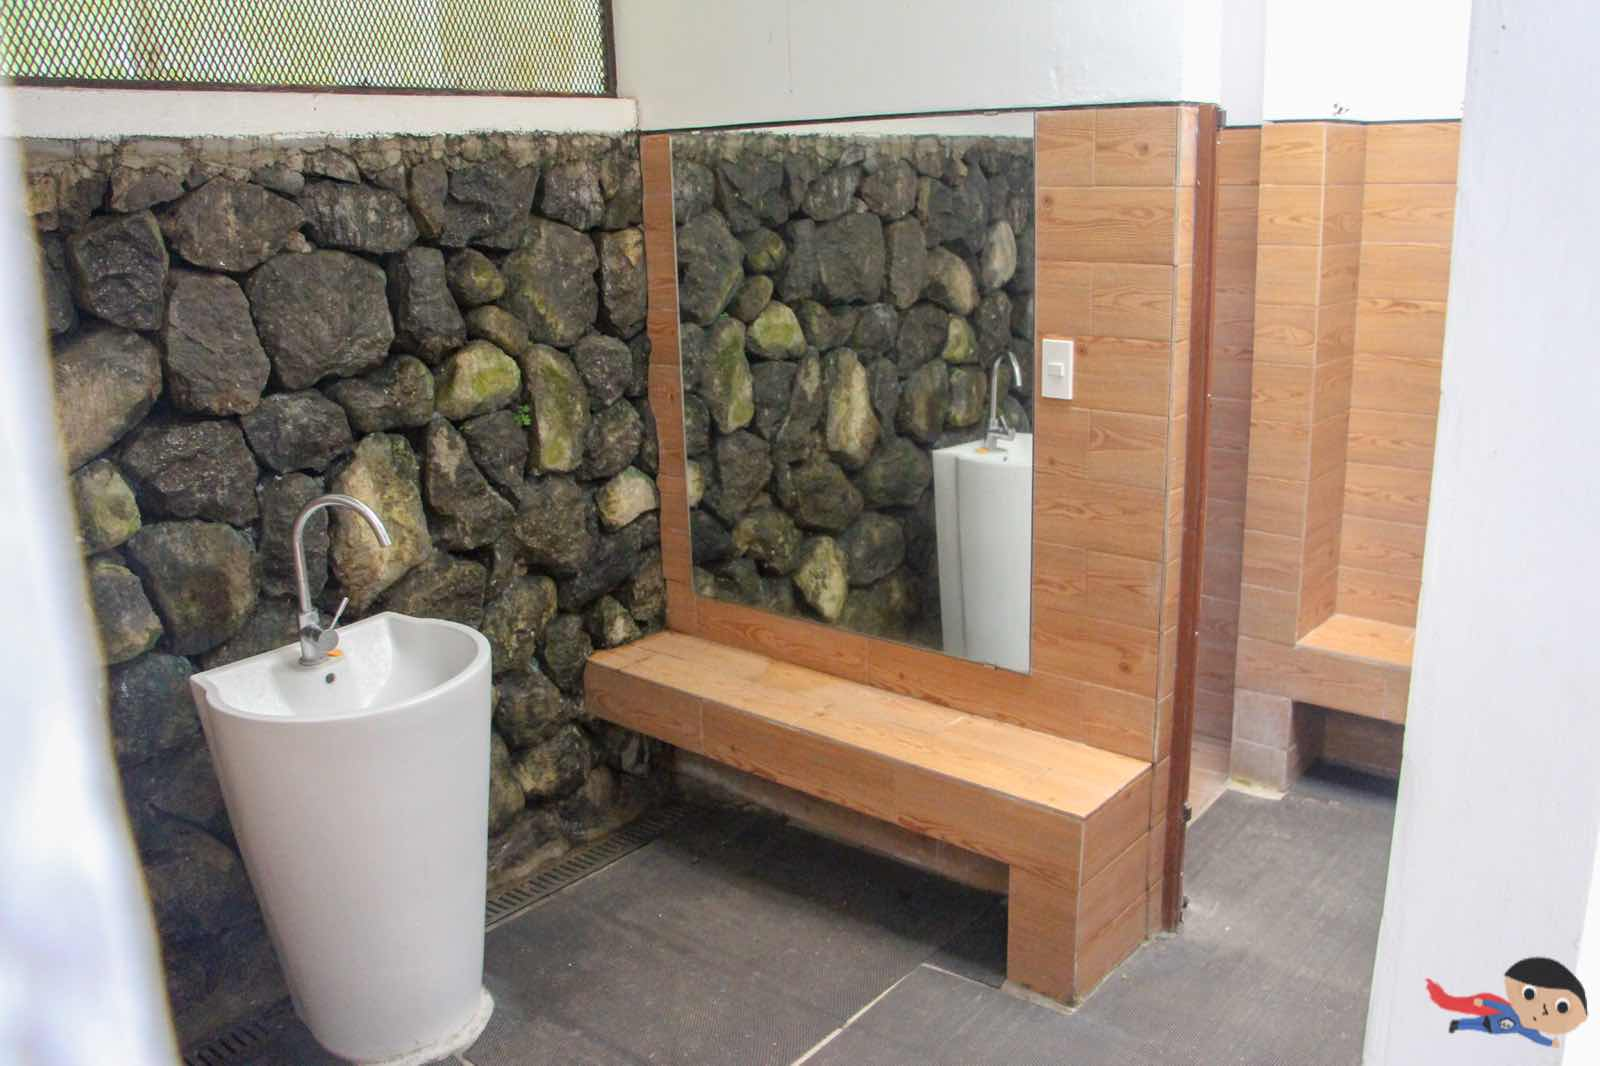 Shower area and toilet in the pool side of Jamaica Peak Resort